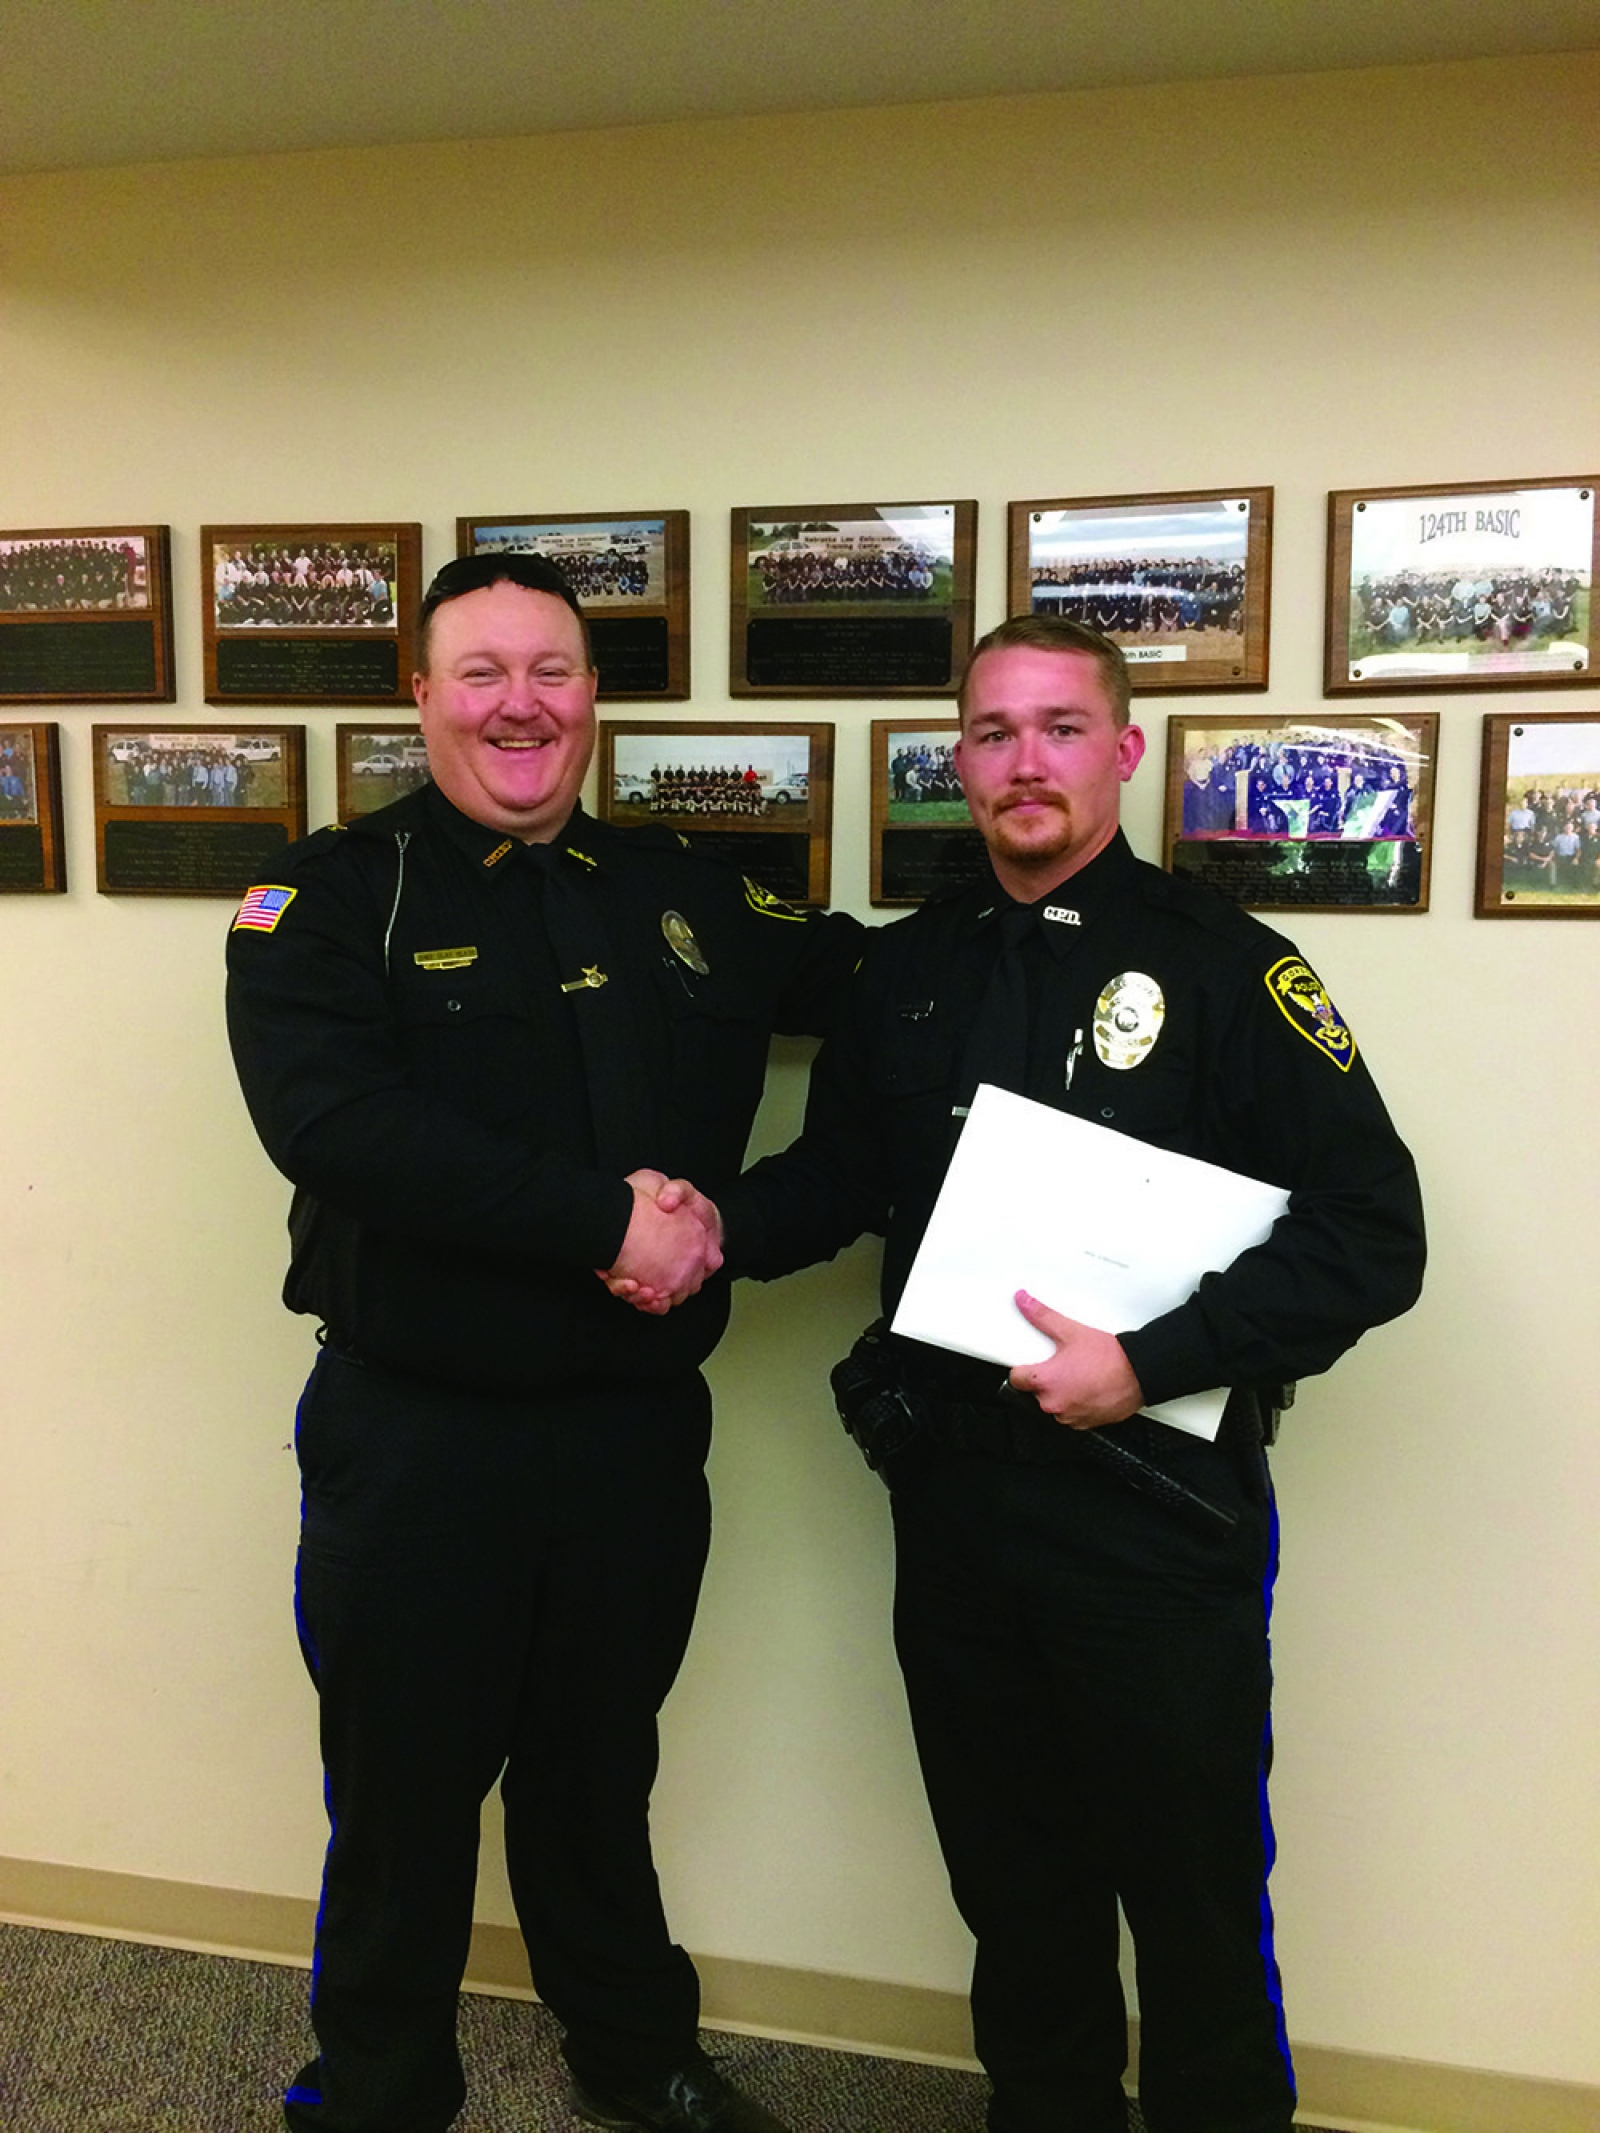 Gordon Police Department's newest Police Academy graduate, Officer Colin Hyatt, shakes hands with Chief of Police, Clay Heath after graduation.